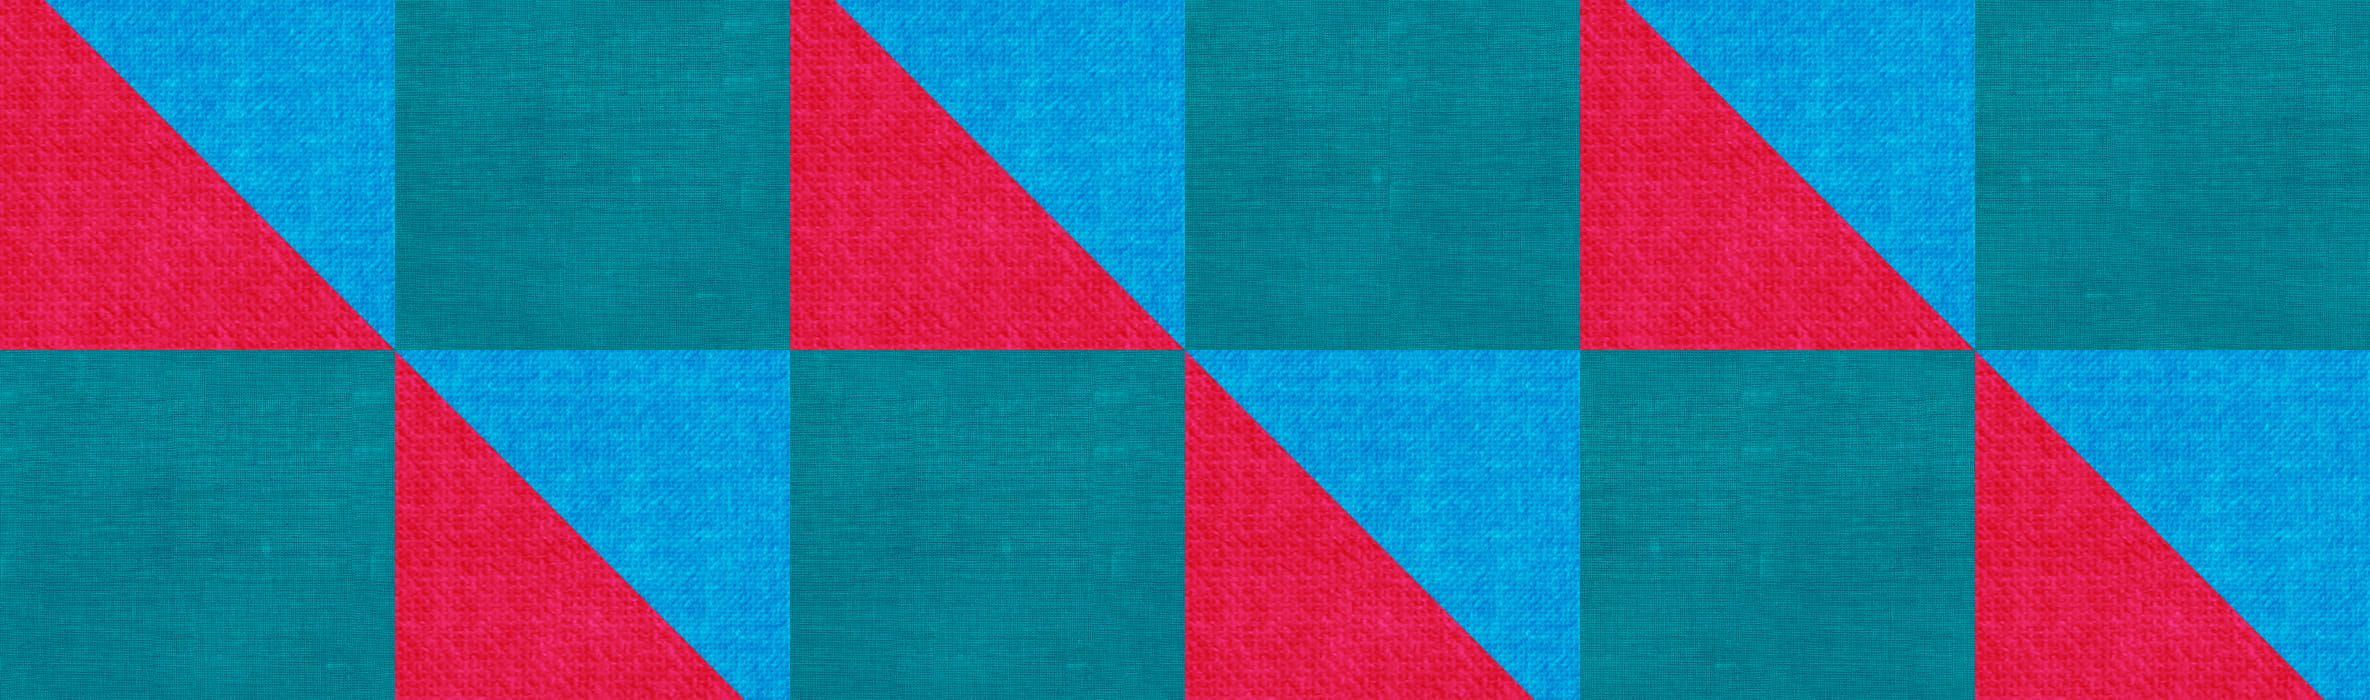 blue, red and teal pattern